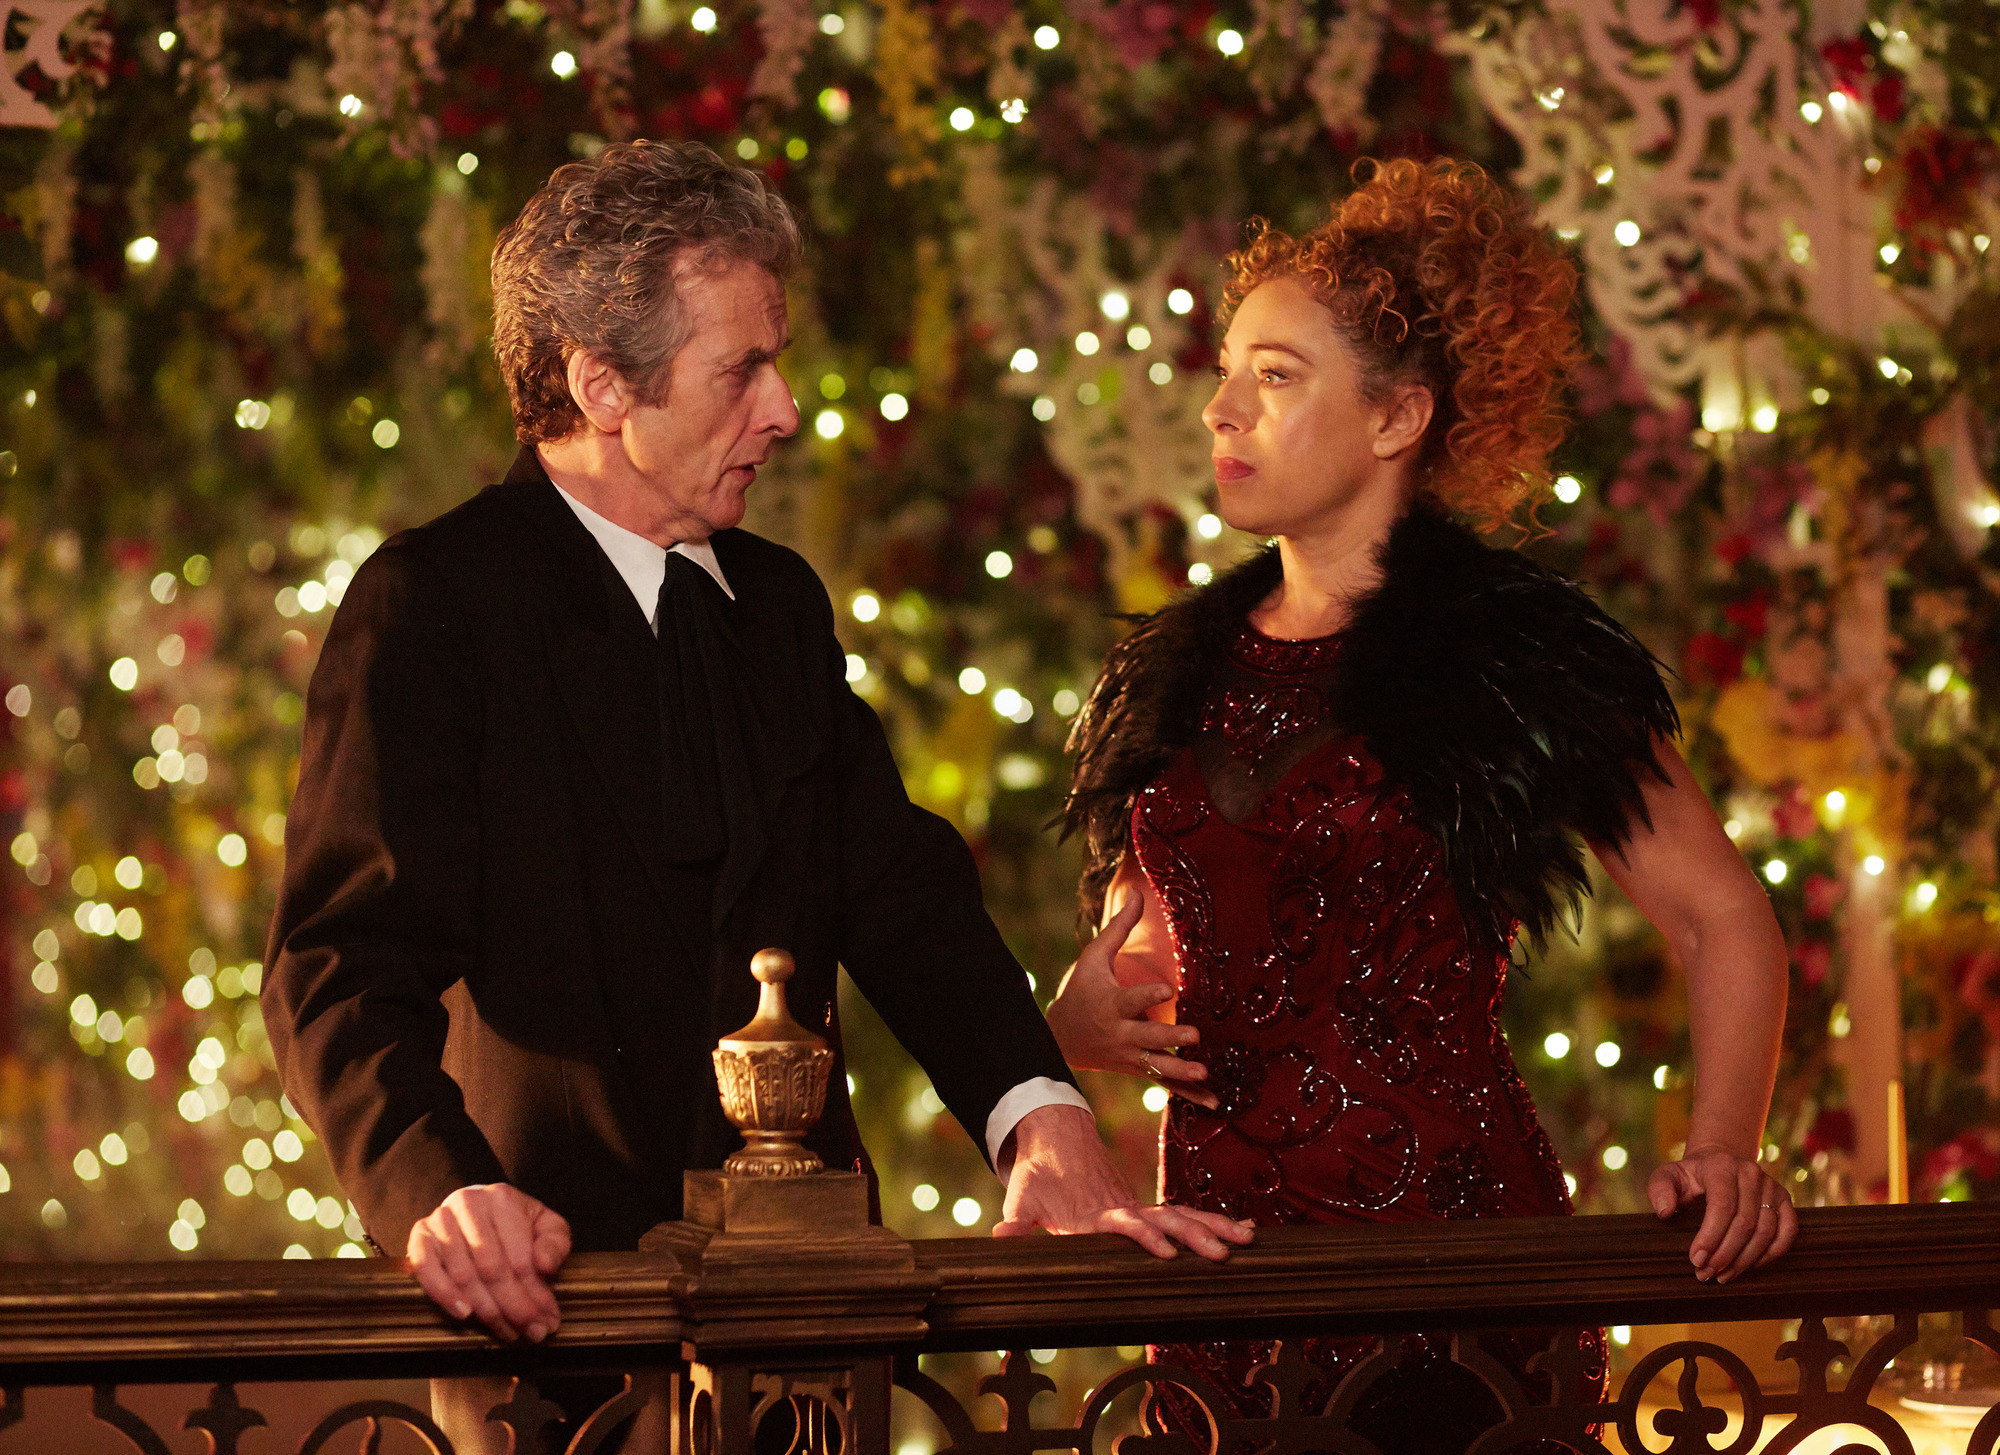 Doctor Who Last Christmas.Doctor Who Christmas Special The Husbands Of River Song